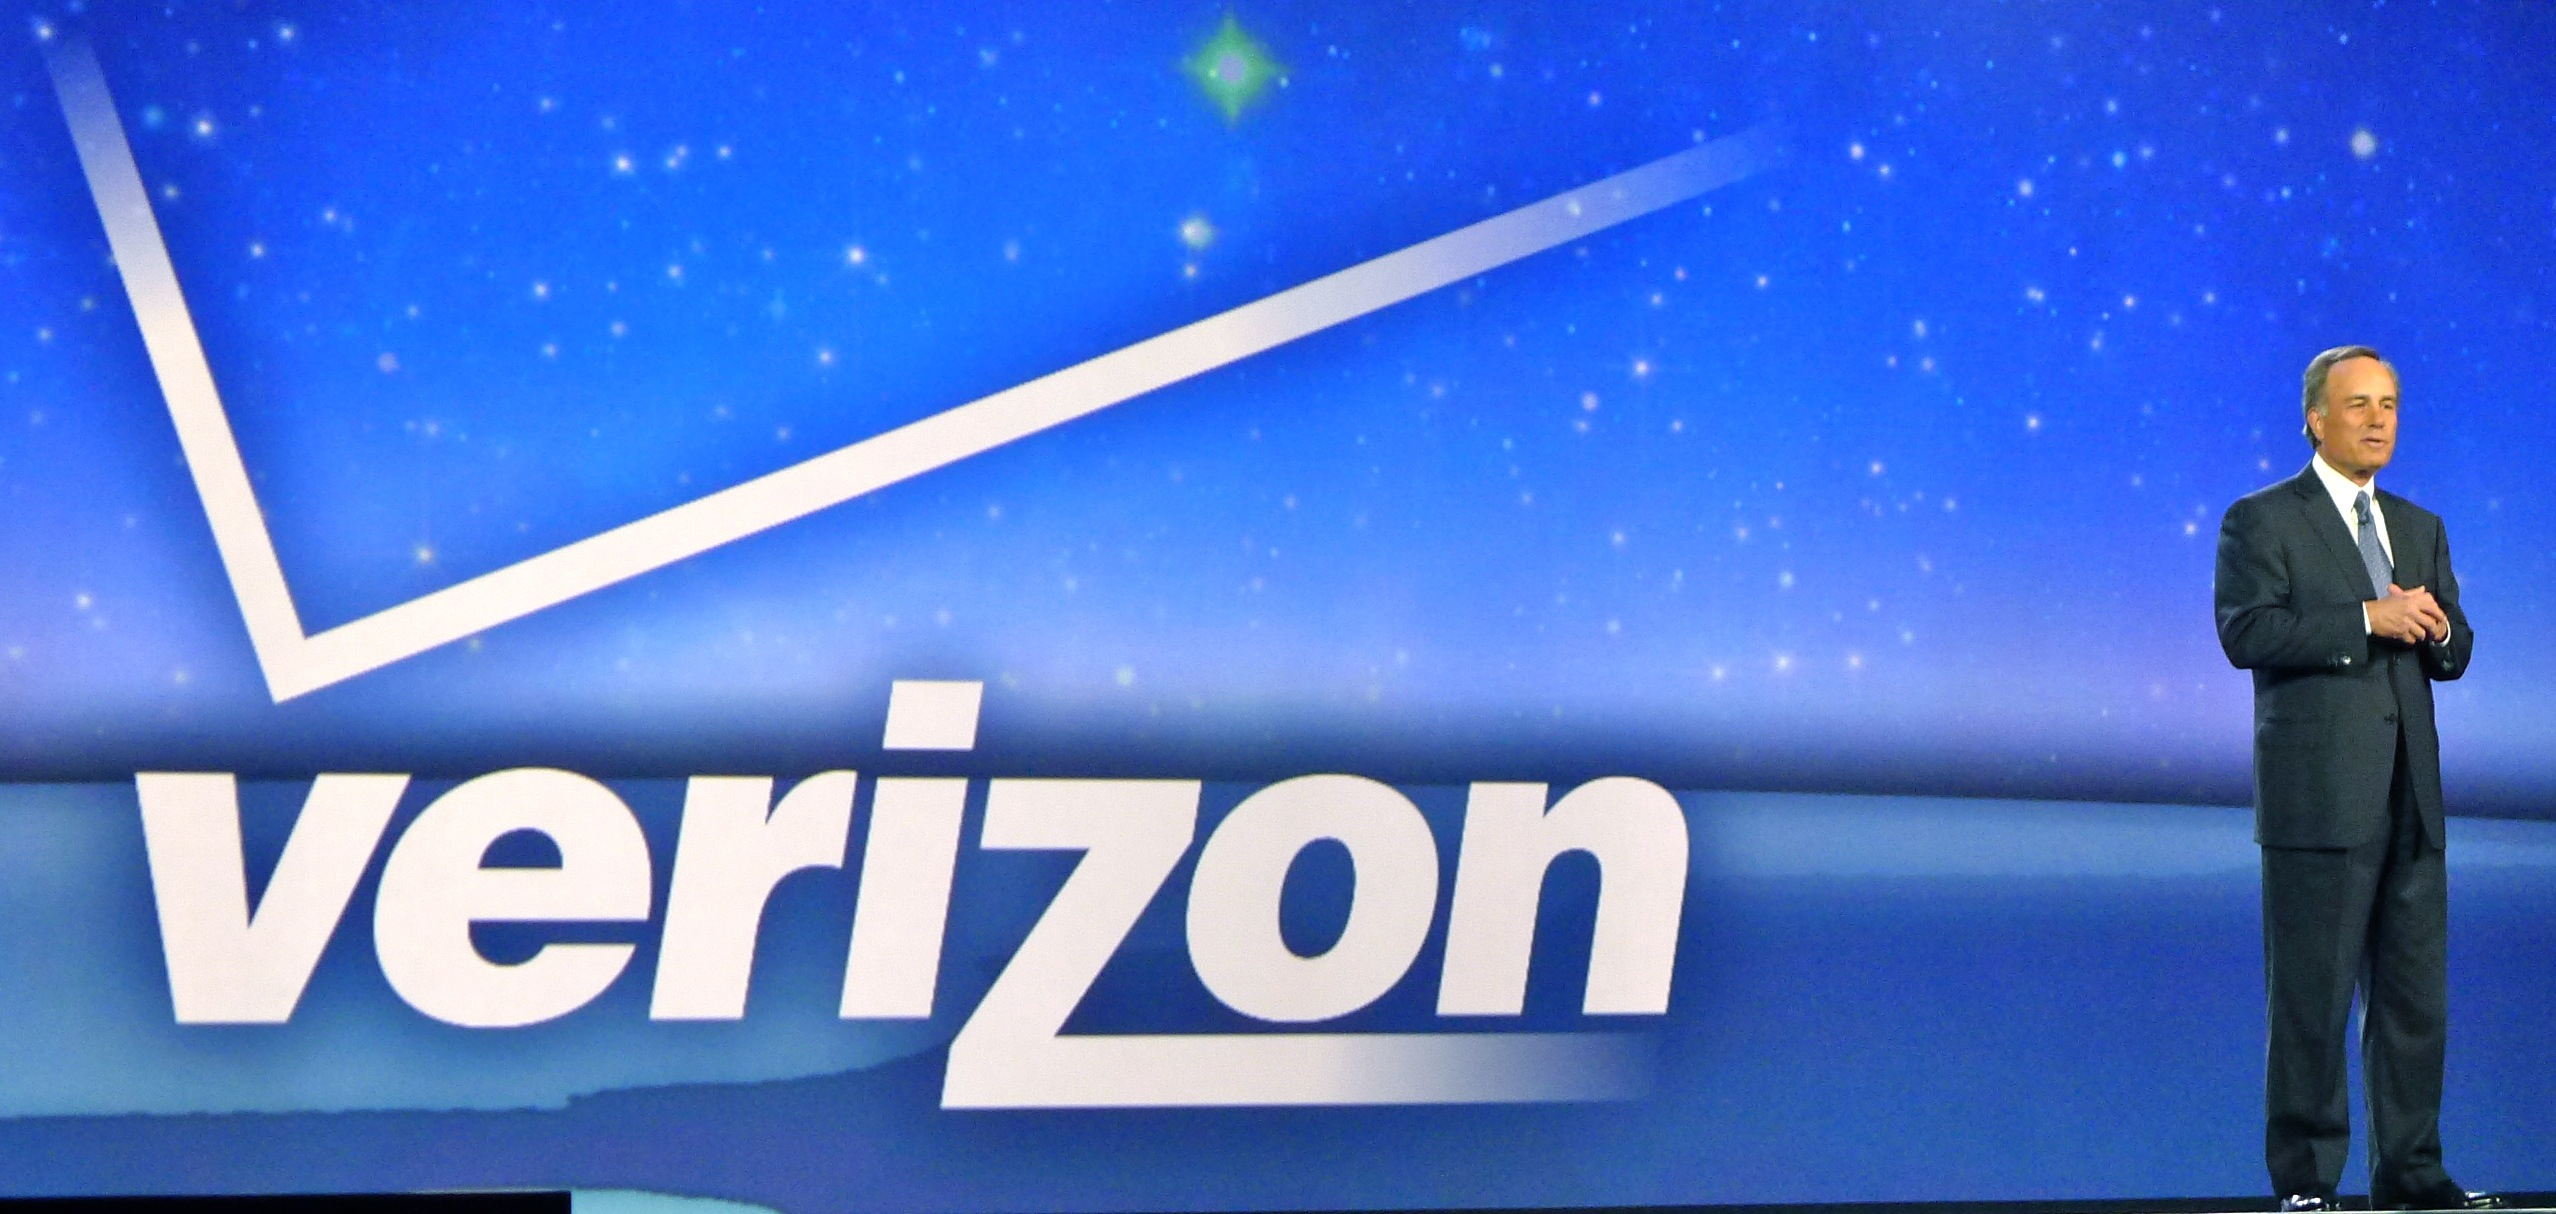 Verizon buys 122 wireless spectrum licenses from Comcast, Time Warner Cable for $3.6 Billion